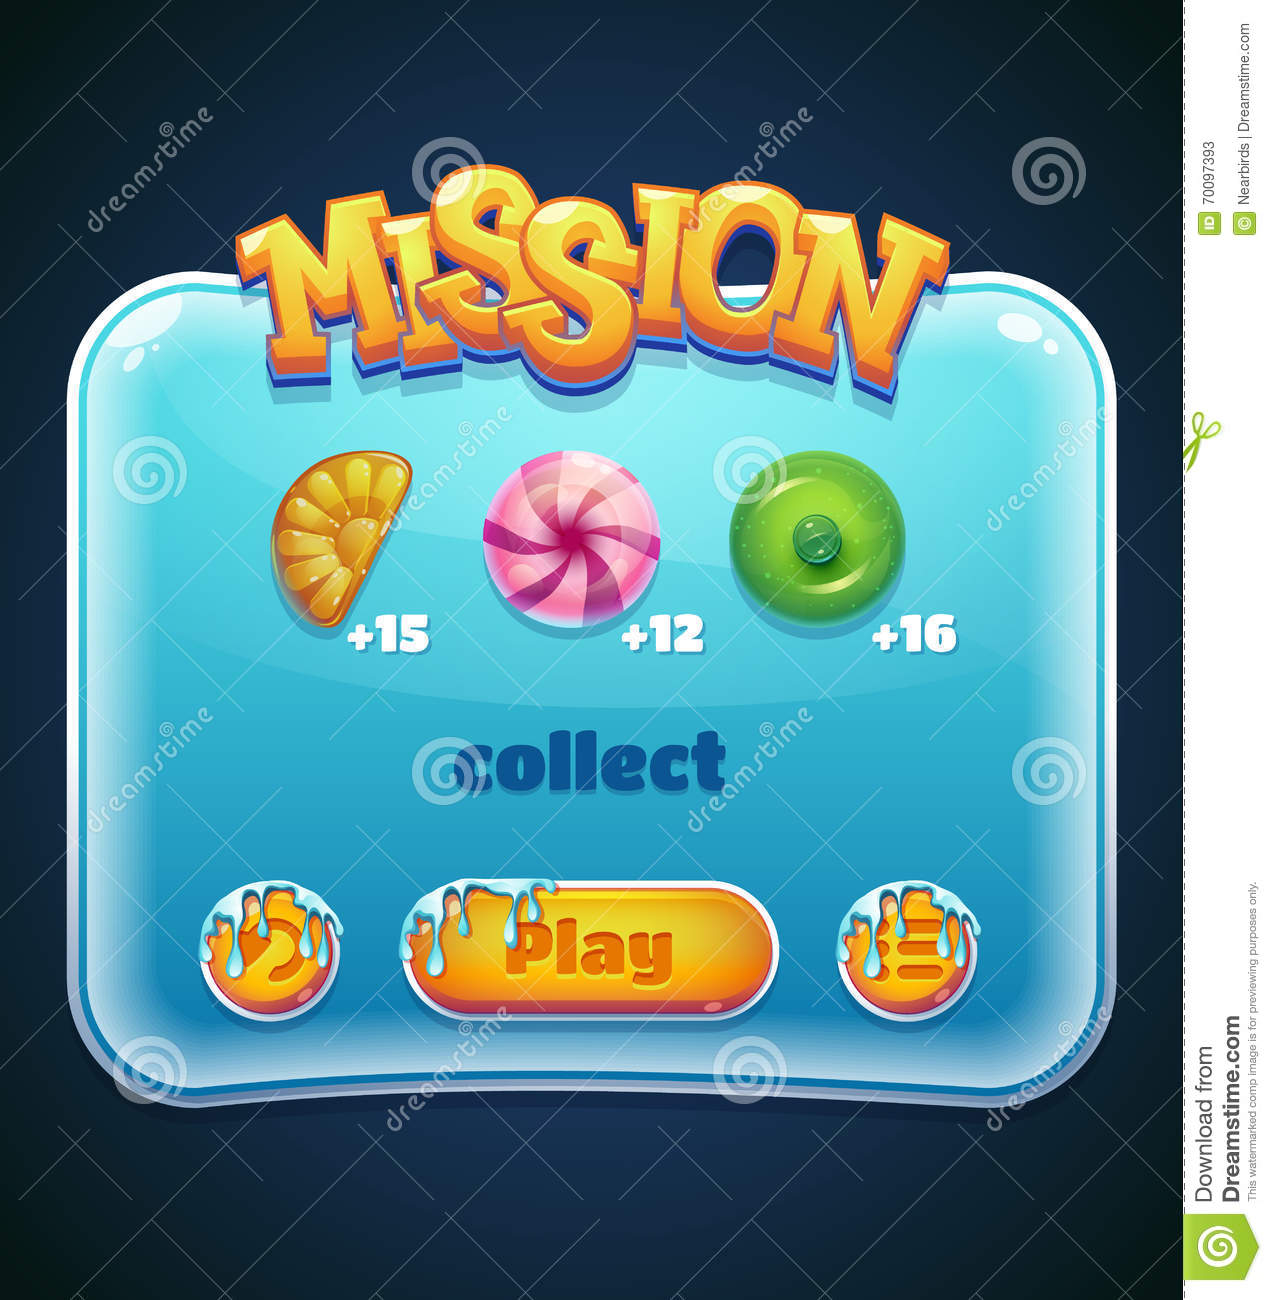 Game Window For Mission Computer App Stock Vector